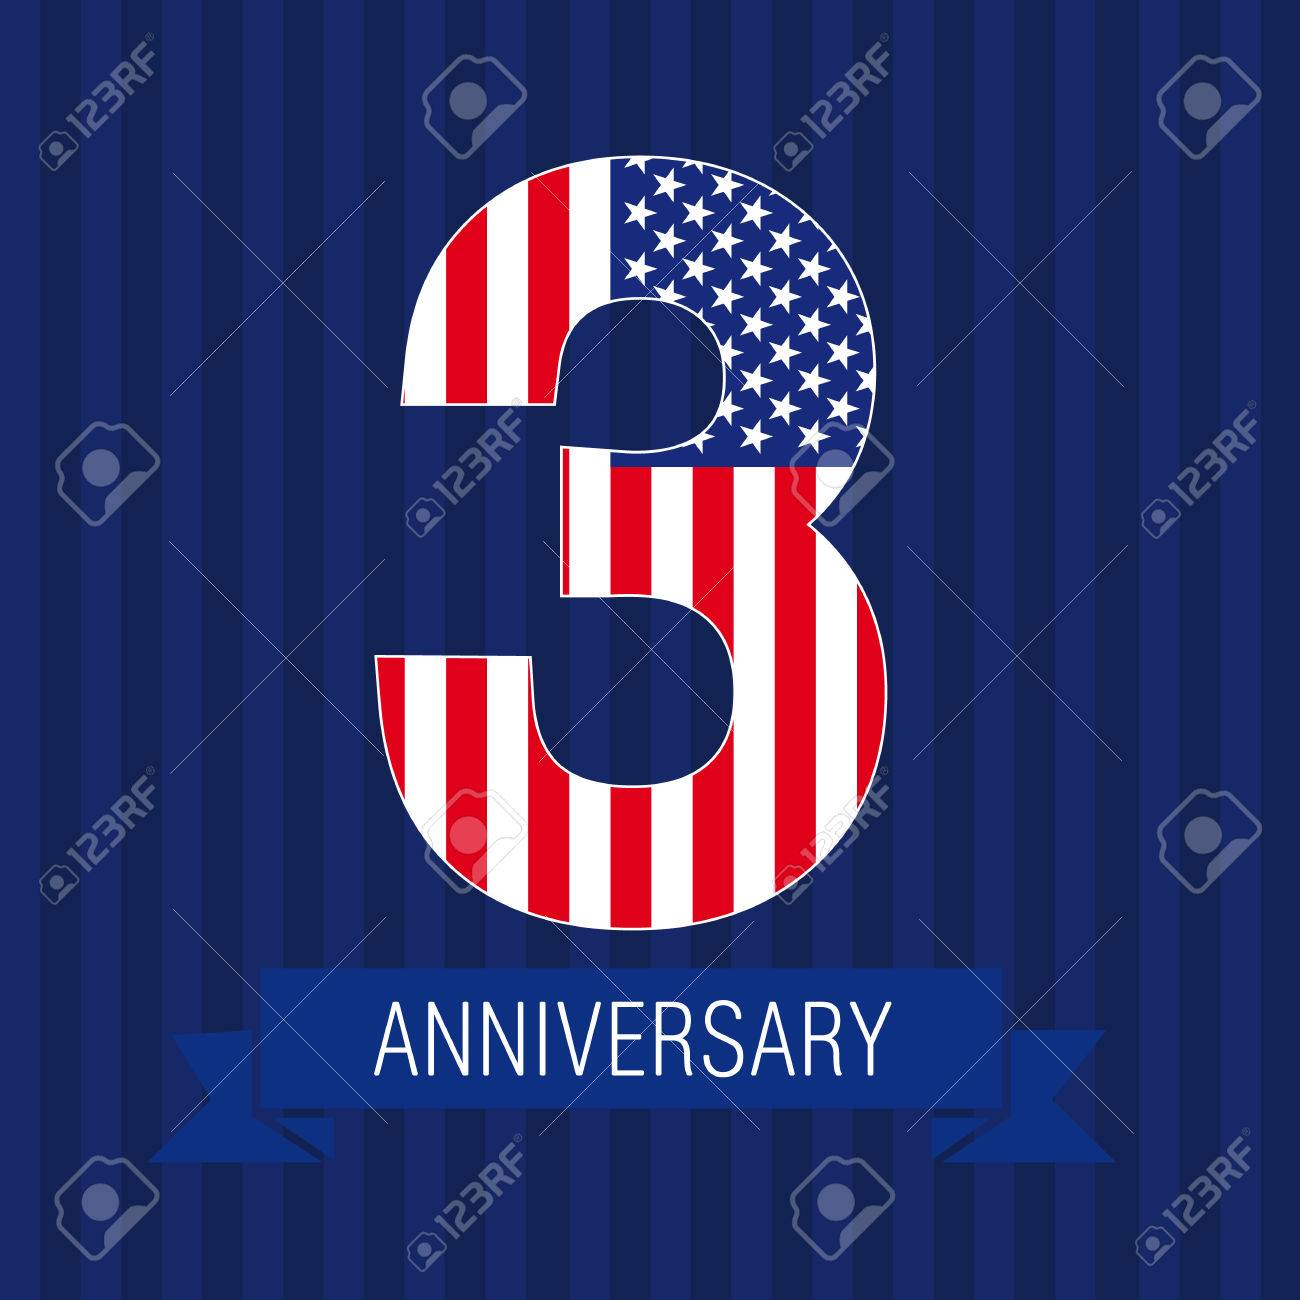 anniversary 3 us flag logo template of celebrating icon of 3